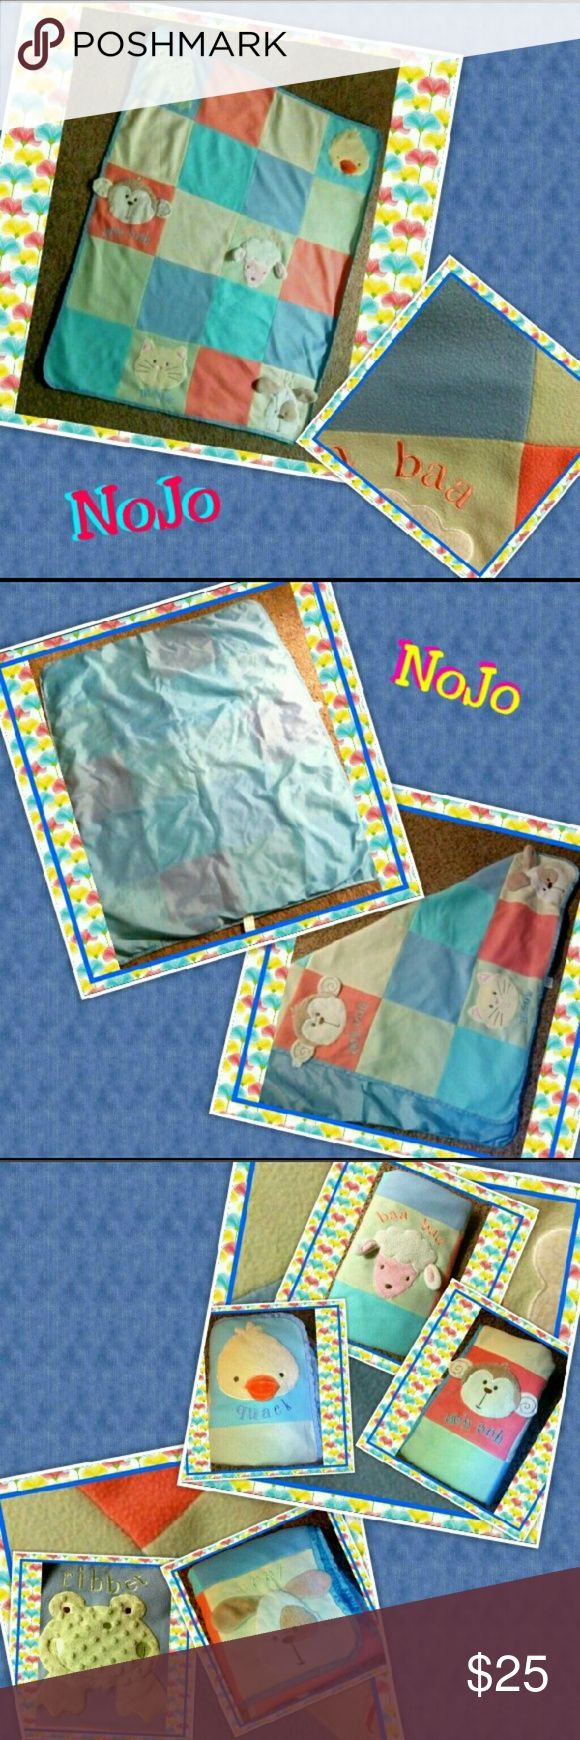 "🐥 40x50 NoJo Animal Sensory Activity Mat 🐥 40""x50"" NOJO Plush Duck Lamb Puppy Frog Activity Toddler Bed Comforter Blanket From a Set NoJo 40"" x 50"" Soft Fleece Animal Sensory Rattle Activity Play Mat Baby Blanket  Brand: NoJo Material: 100% Polyester Color: Blue, Green, Coral/Peach, Purple Type: Blanket Gender: Unisex Size: 40"" x 50"" Theme: Sensory  Model: Baby Throw Activity, Noise, Touch Blanket. Good to Fair Condition for pre-owned. NoJo Nojo nojo Other"